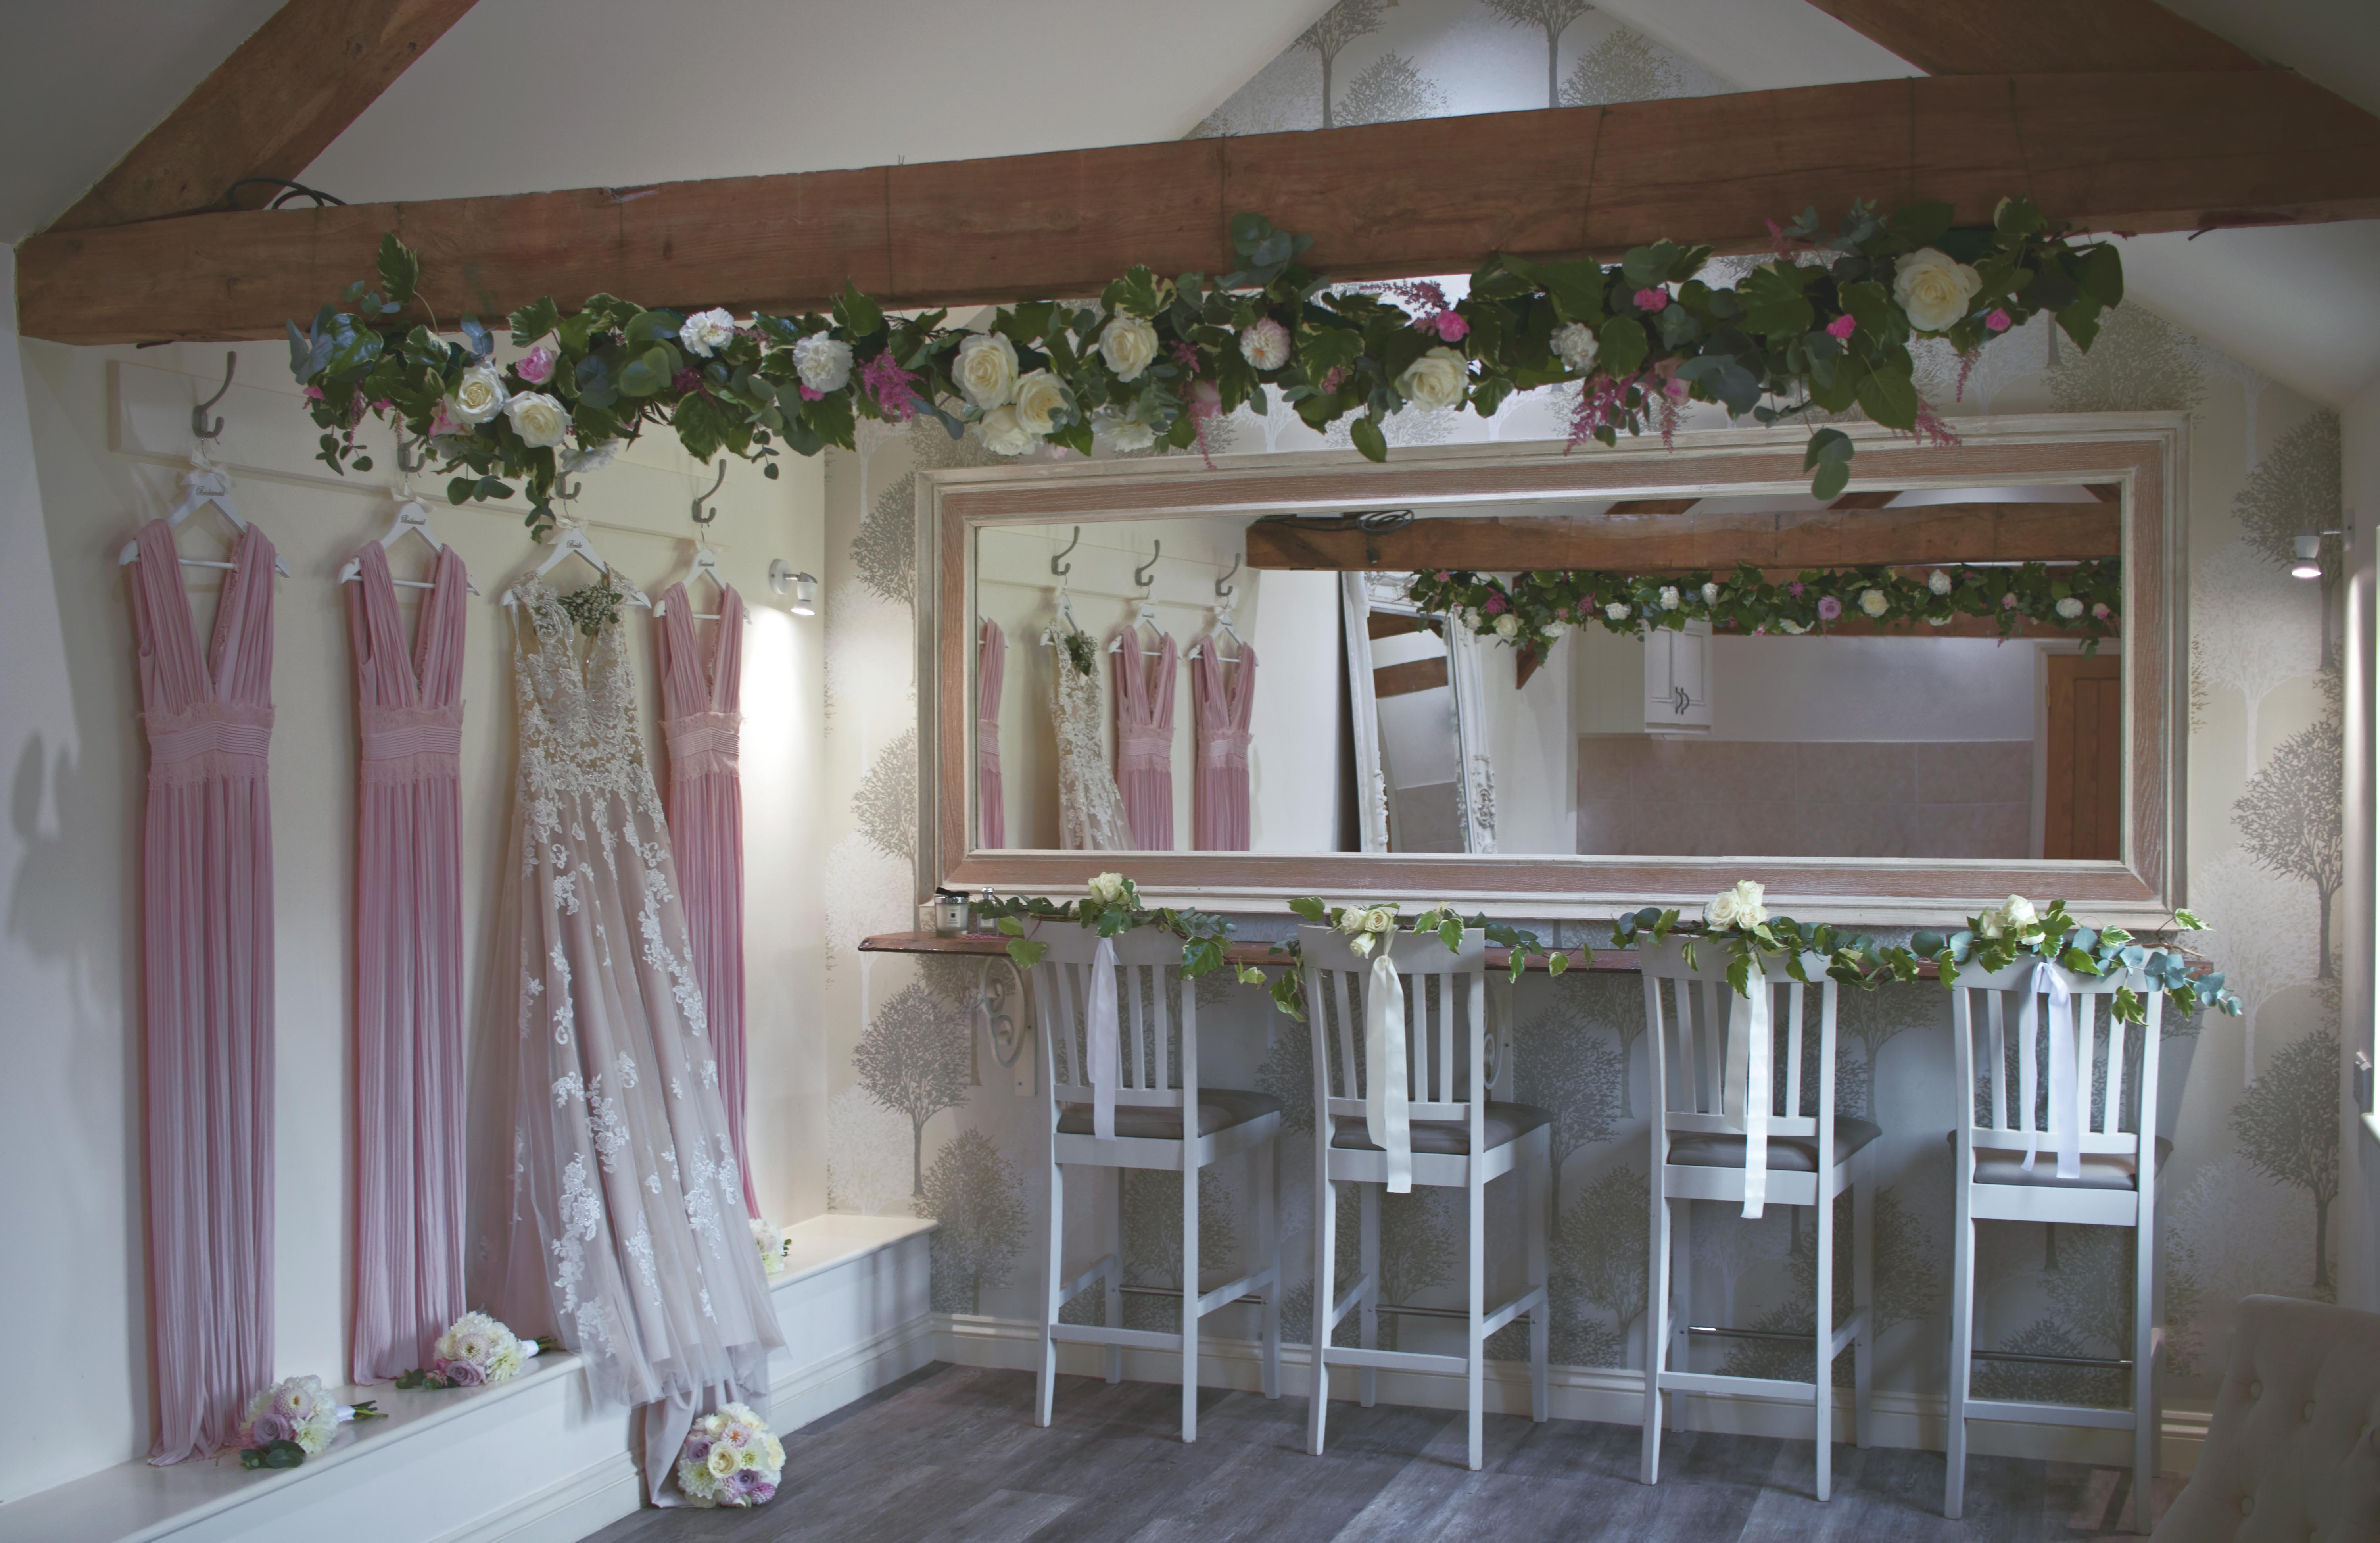 Blush Prink Bridemaids Dresses Bridal Prep Caswell House